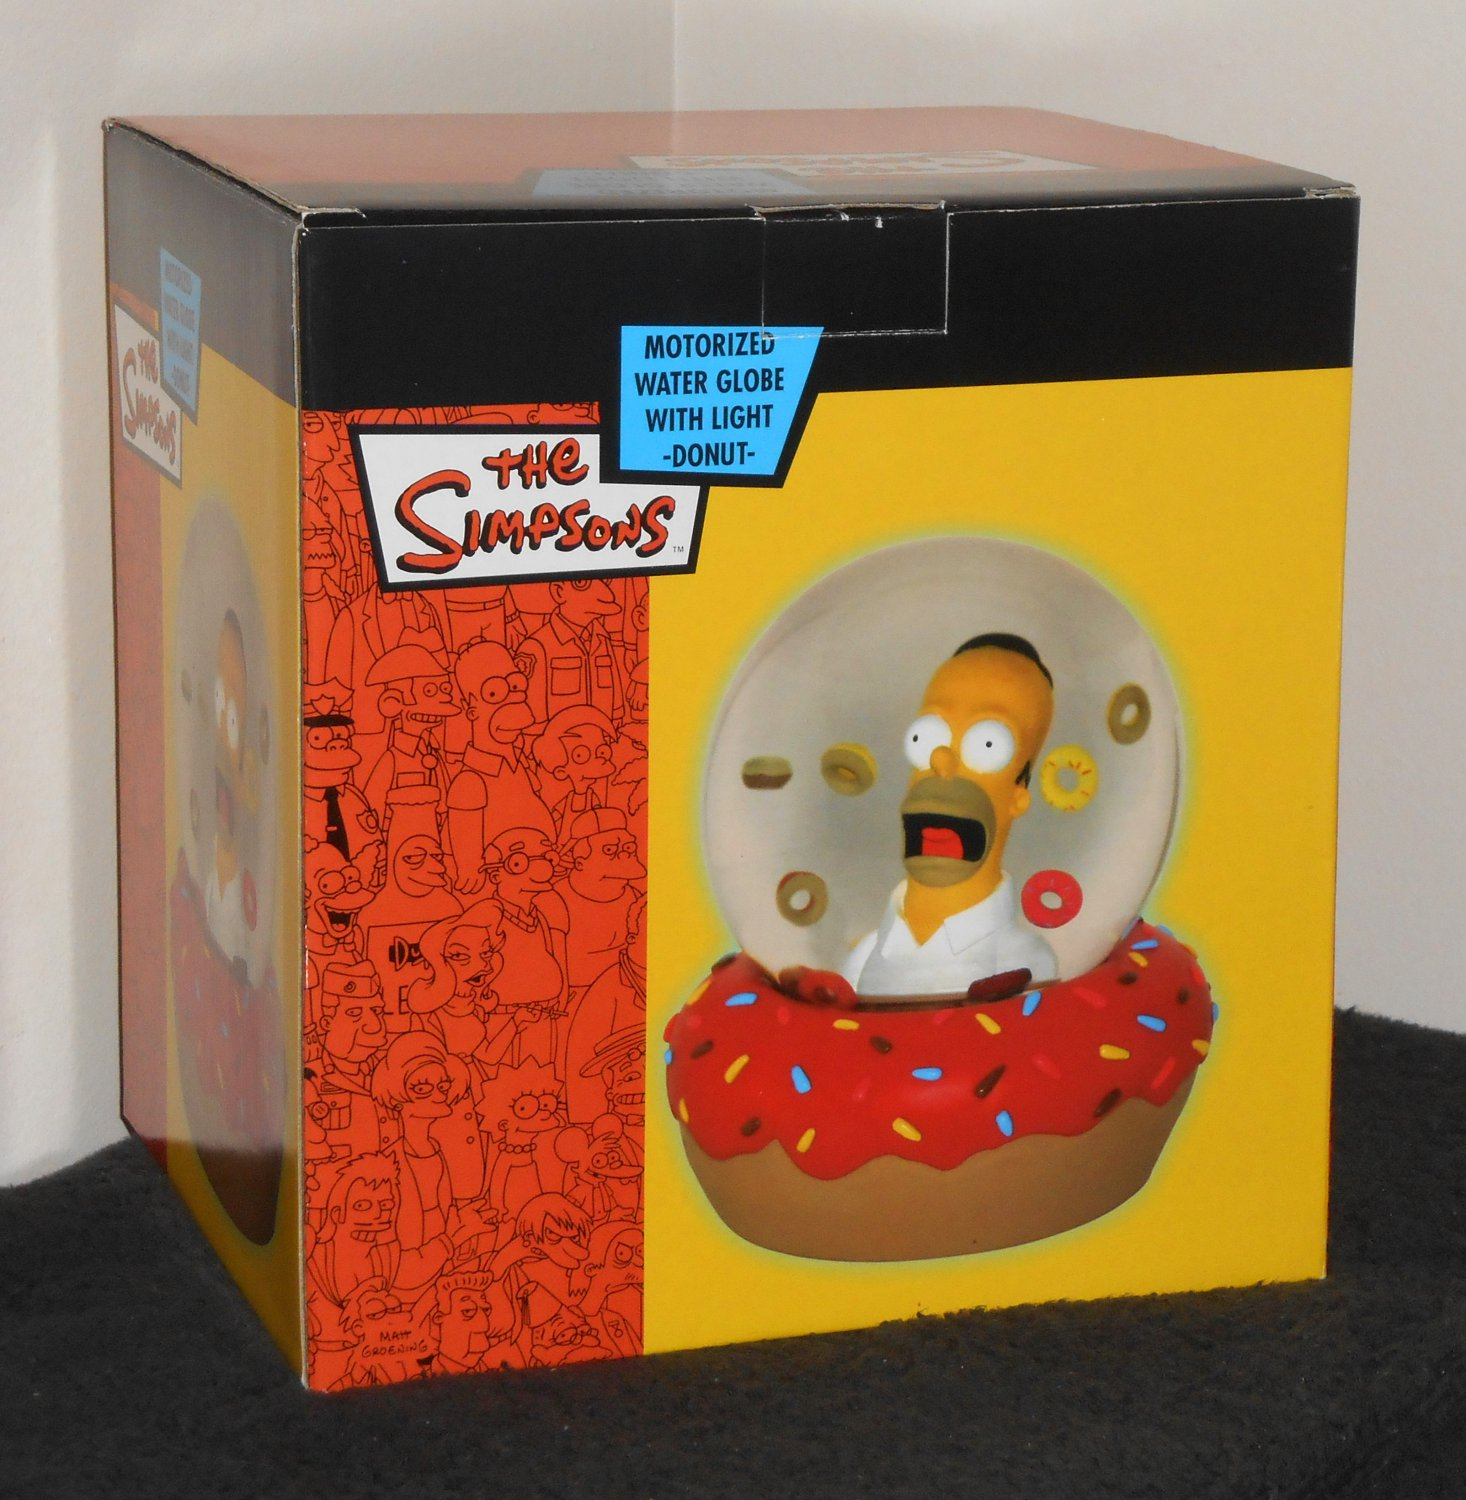 SOLD Homer Simpson Motorized Water Globe with Light Donuts Waterball Ball Fox TV 2004